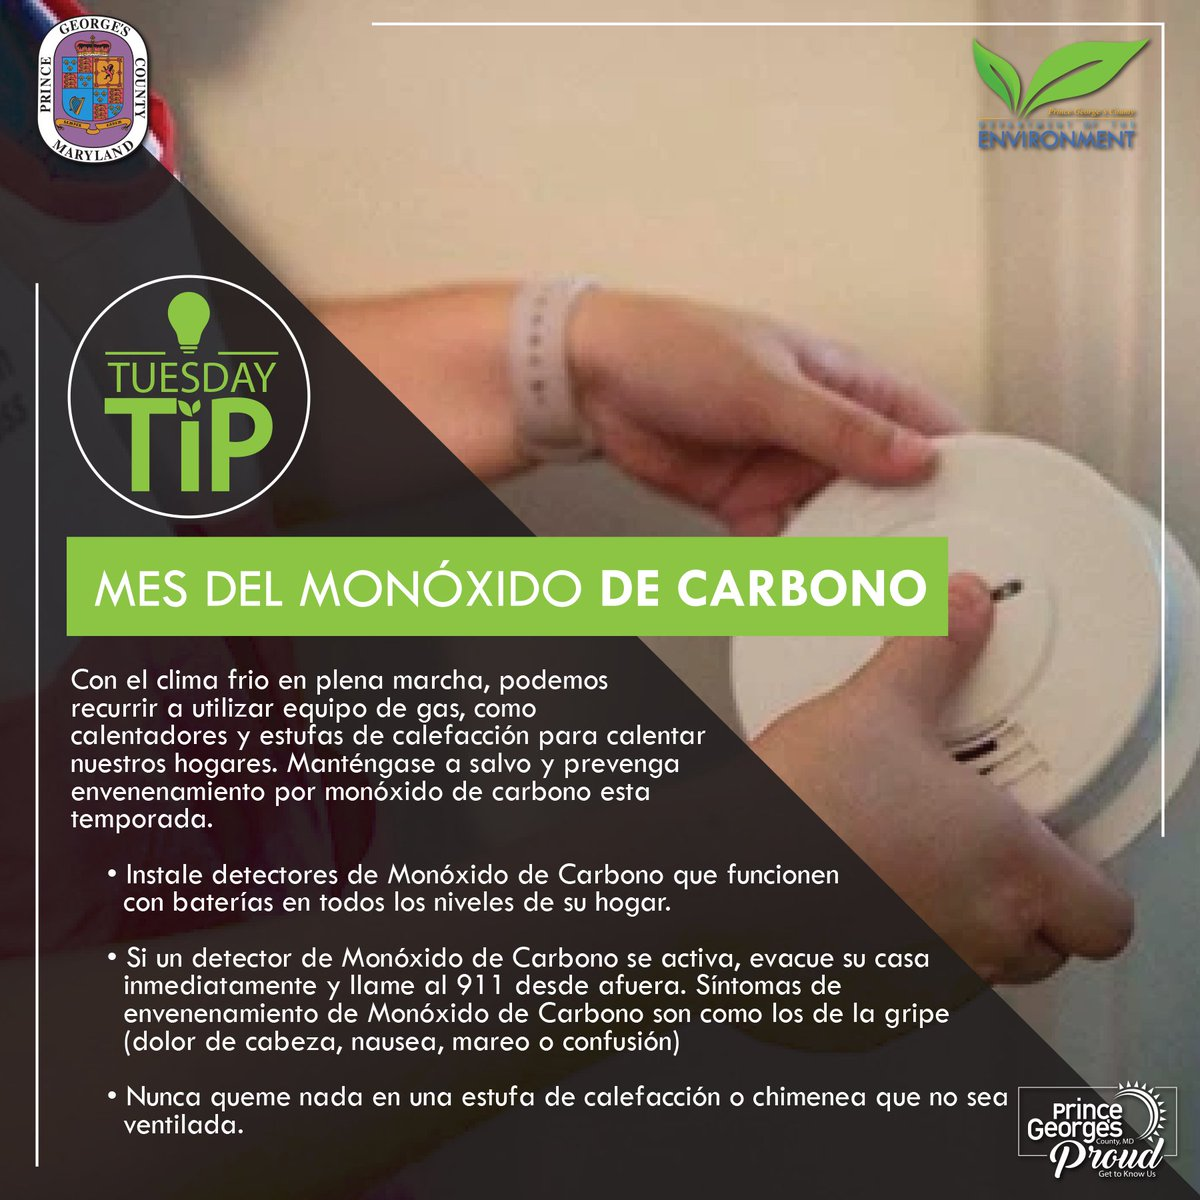 An important #TuesdayTip from our Department of the Environment.   Un consejo importante de nuestro Departamento de Medio Ambiente.